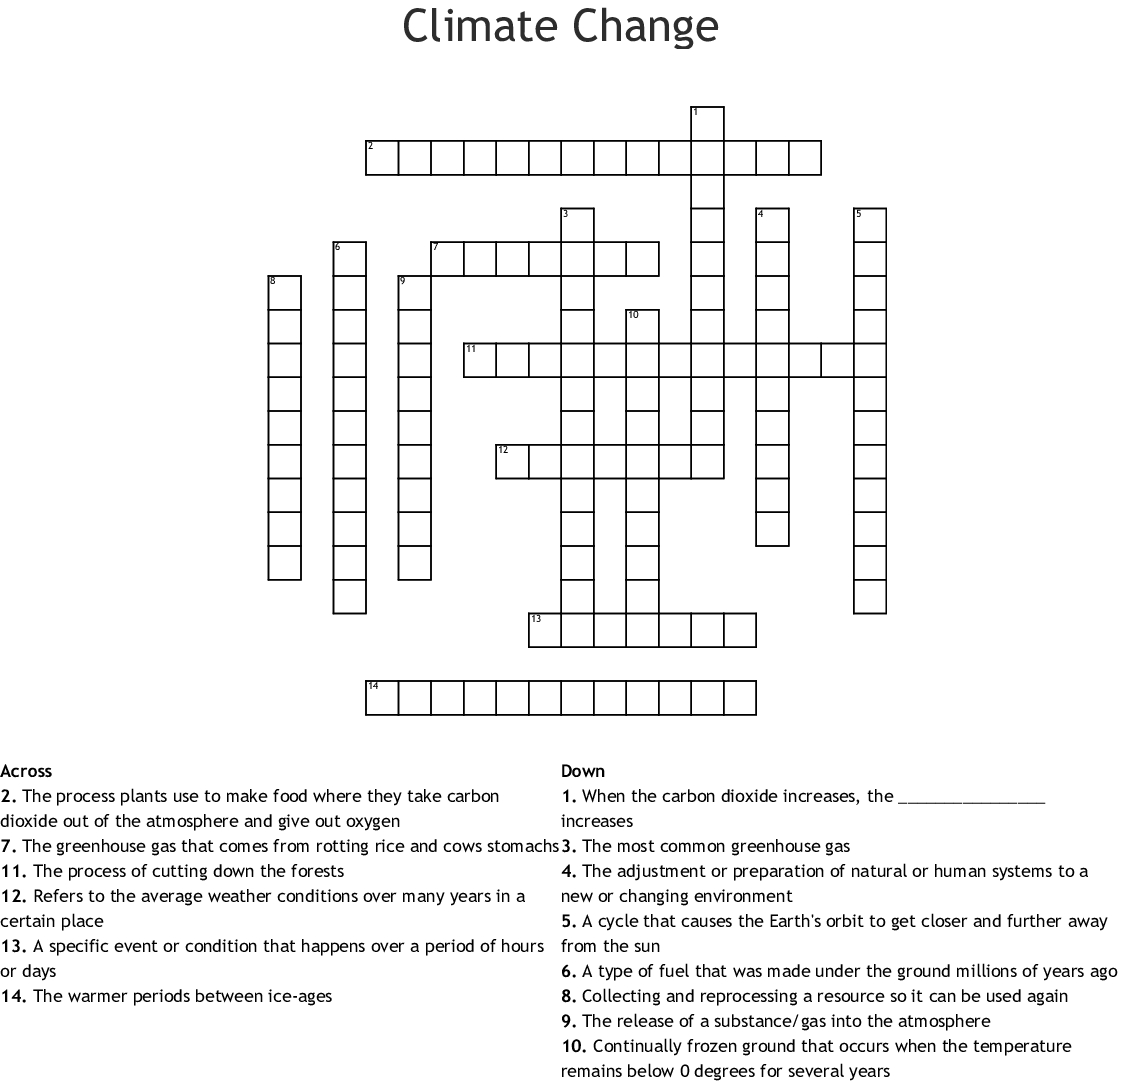 Climate Change Crossword - Wordmint - Printable Weather Crossword Puzzle